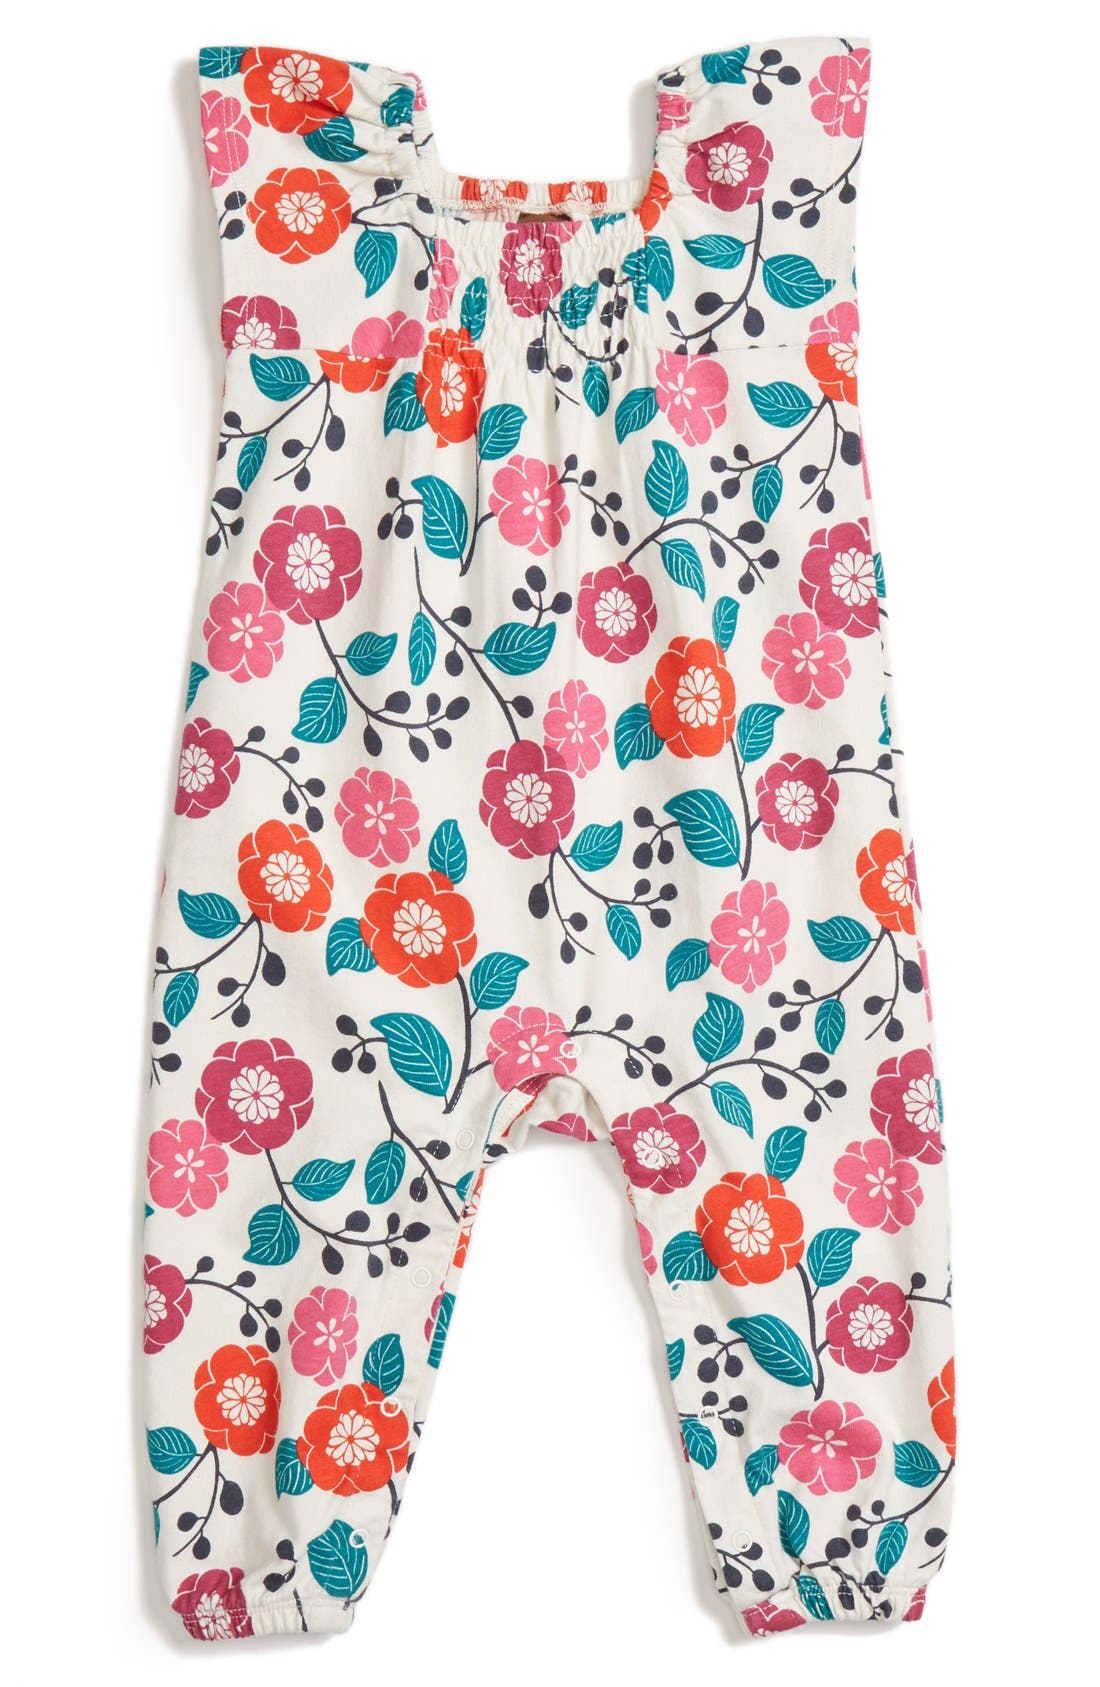 Alternate Image 1 Selected - Tea Collection 'Lyrical Floral' Sleeveless Romper (Baby Girls)